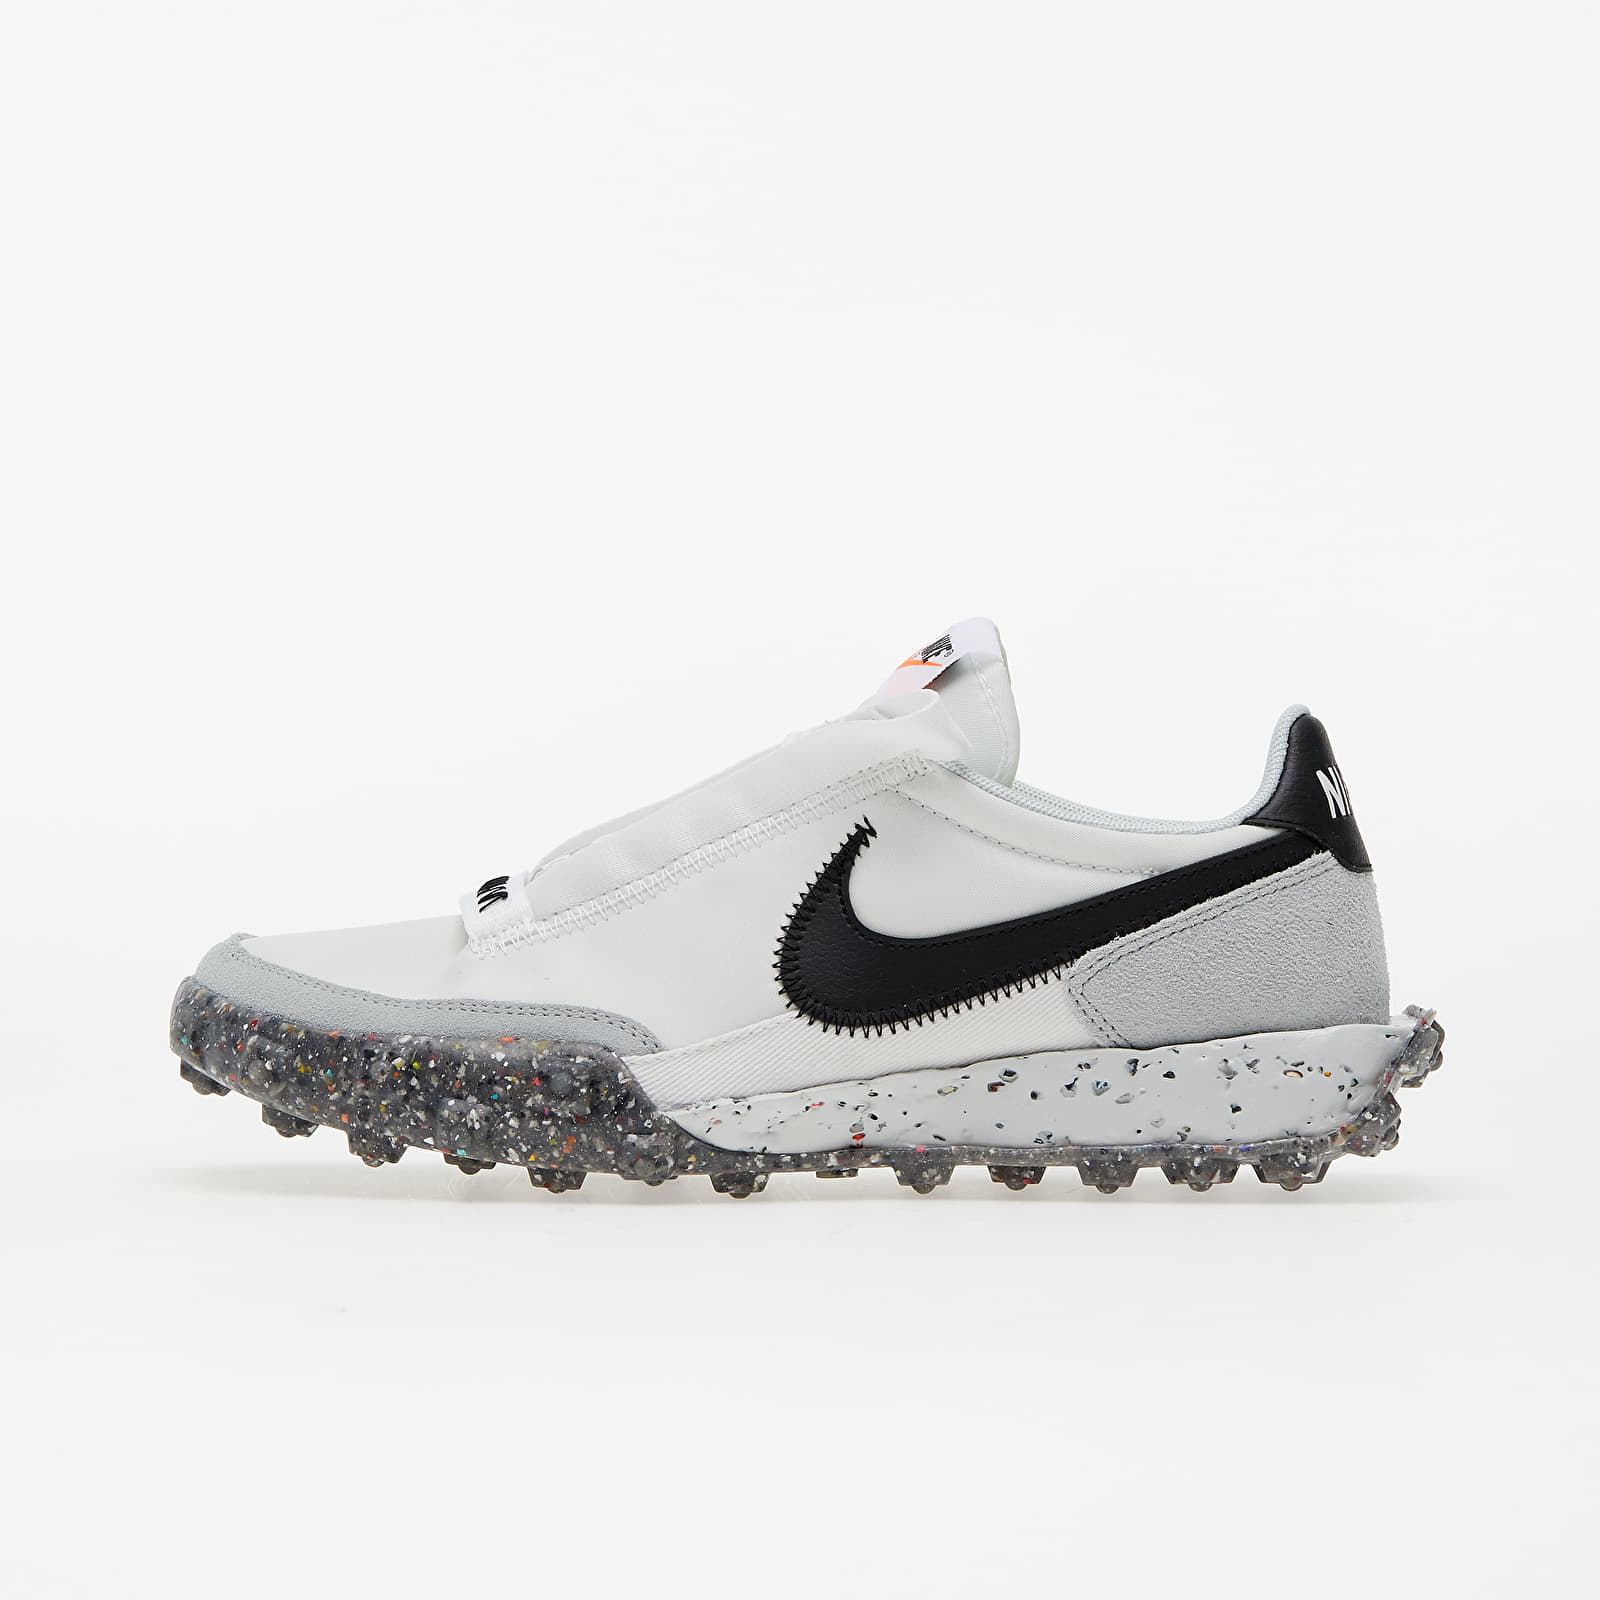 Nike W Waffle Racer Crater Summit White/ Black-Photon Dust-Dark Grey EUR 38.5